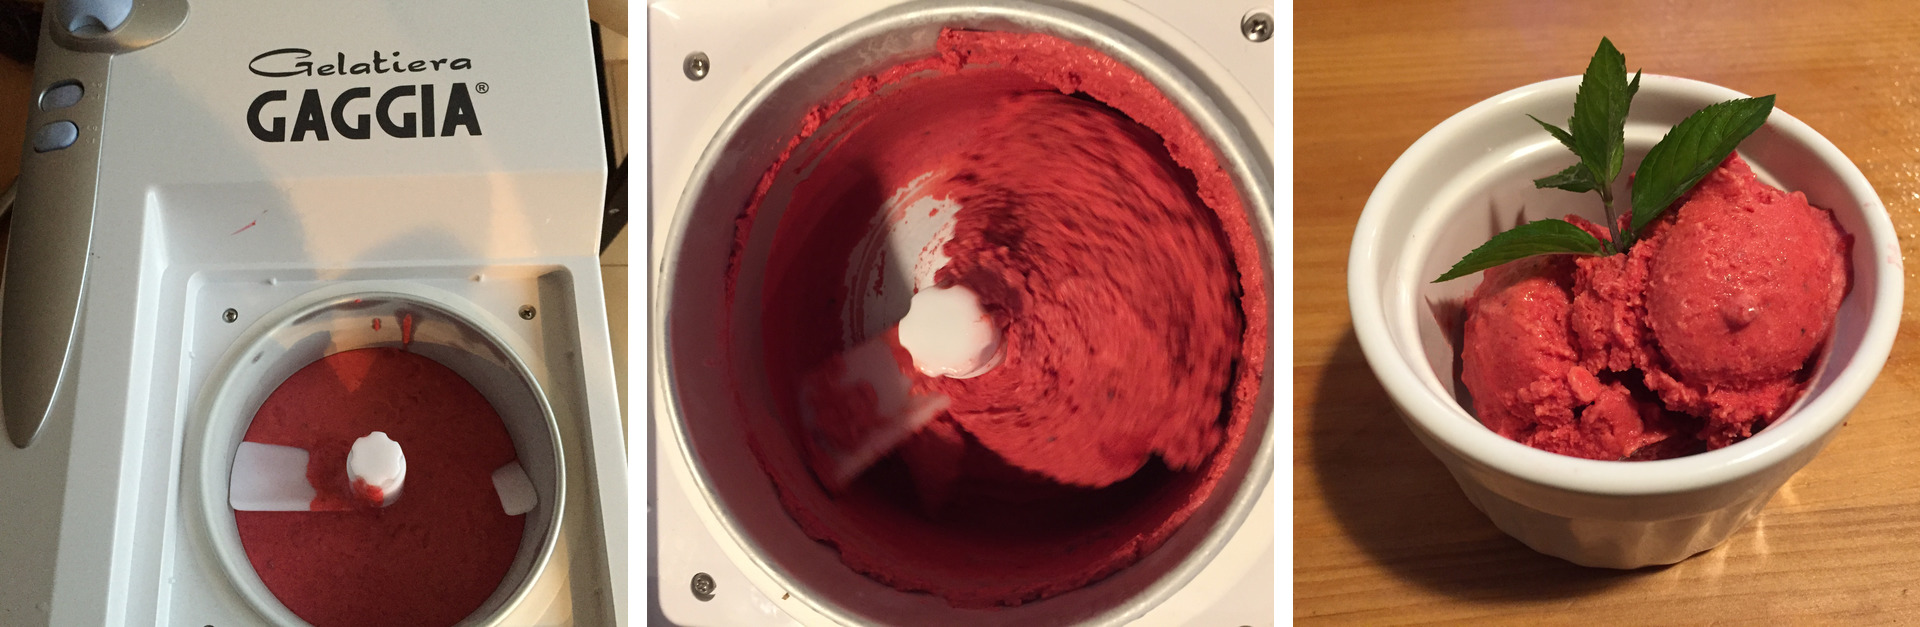 The raspberry ice cream in the ice cream maker